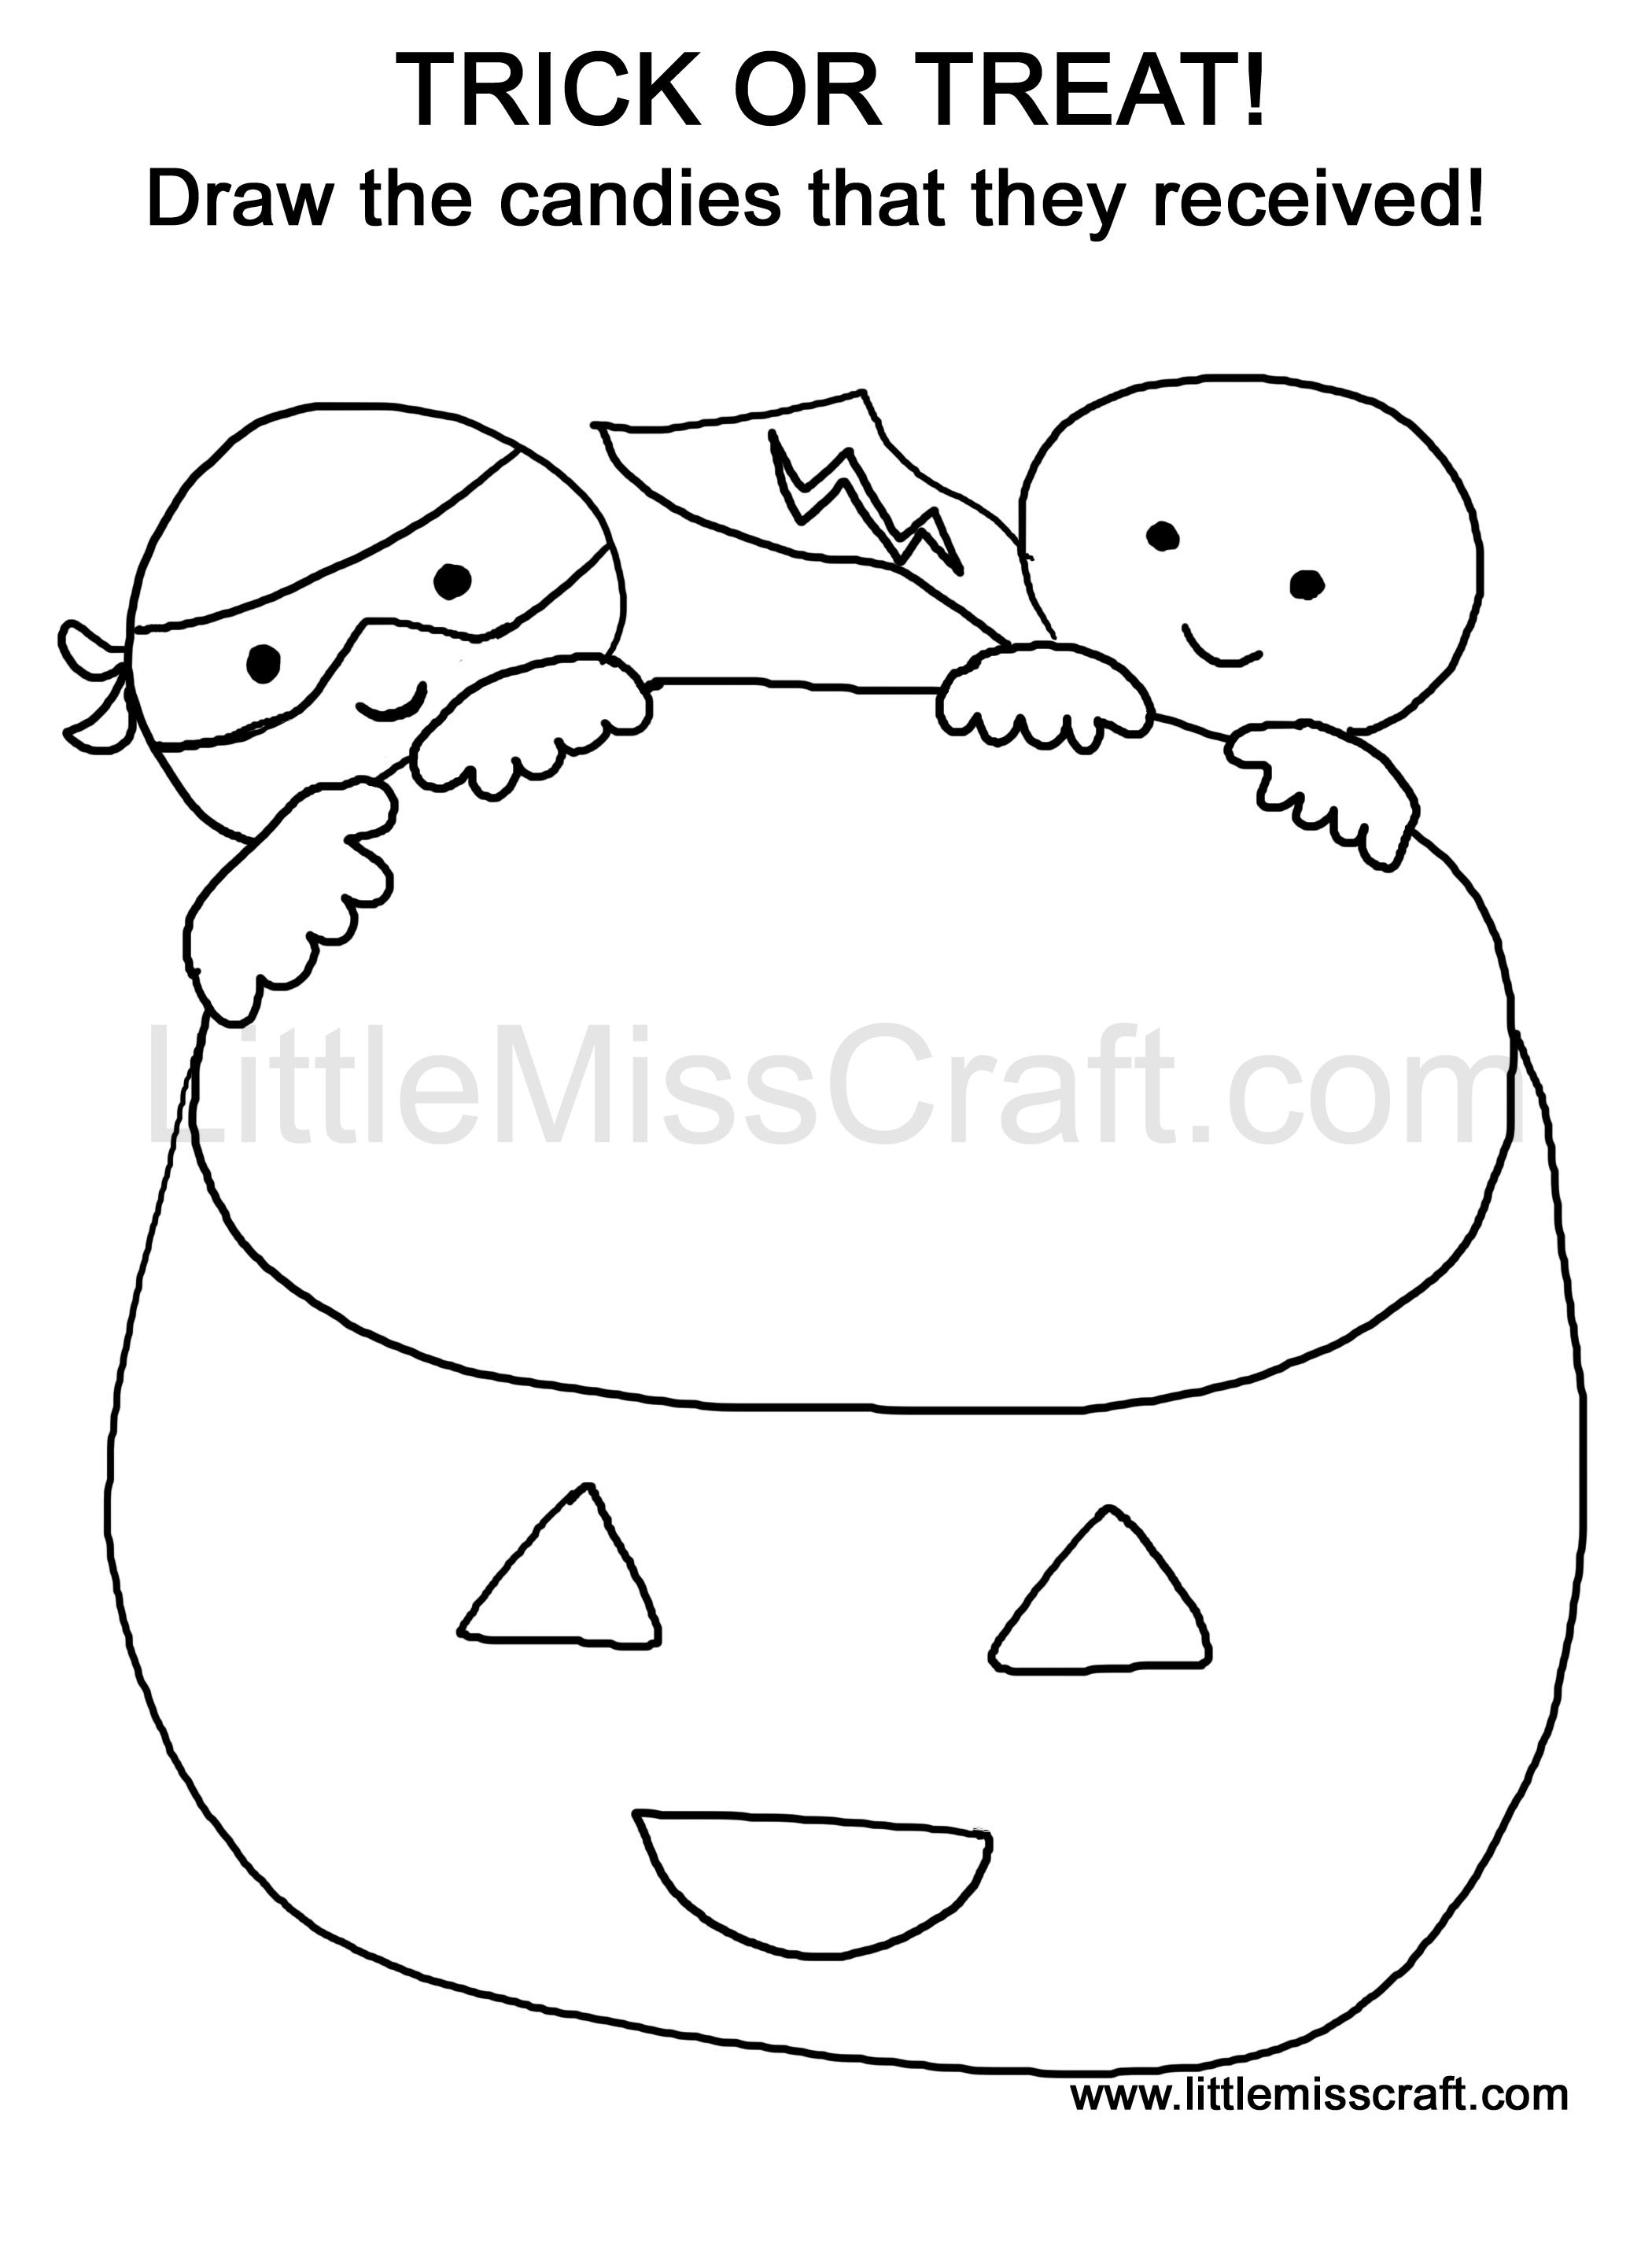 Halloween Trick or Treat Doodle Coloring Page